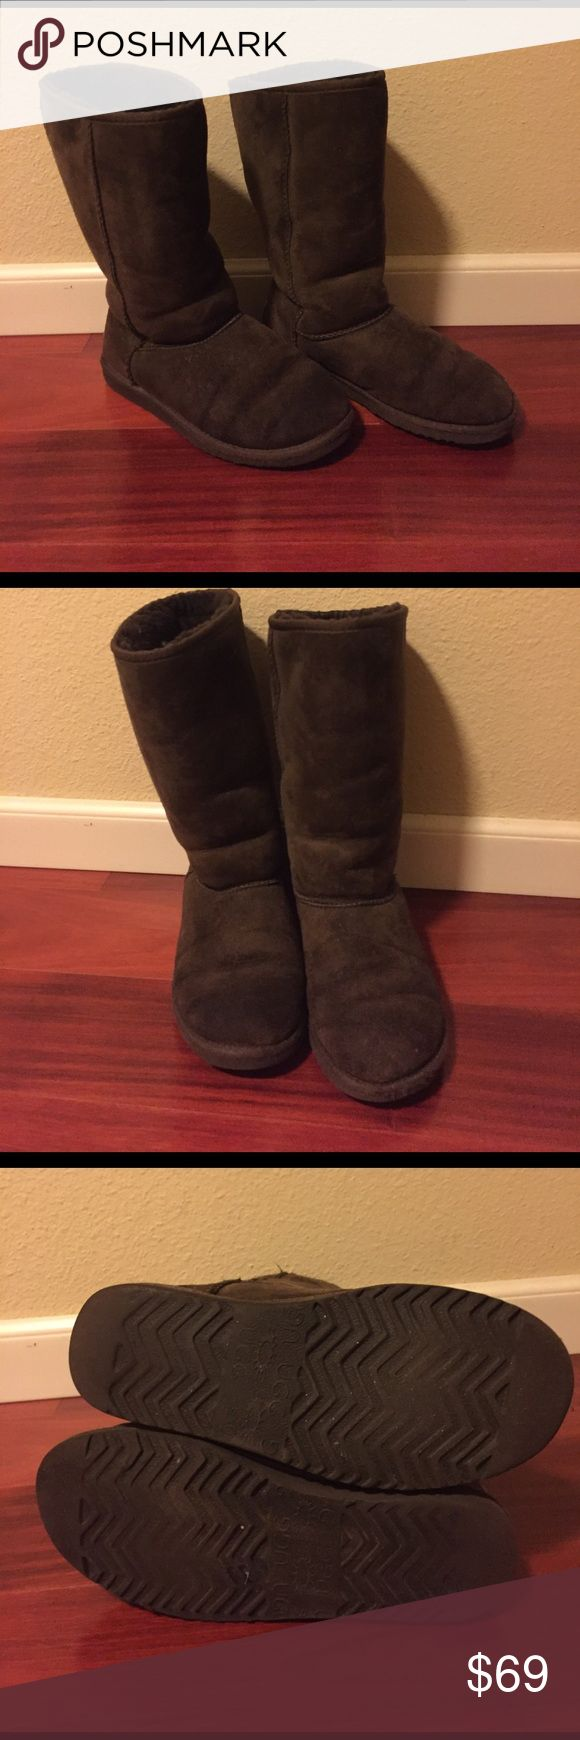 💥 Chocolate brown Classic Tall Kids UGG Boots 💥 Chocolate brown Kids Youth Ugg Boots. Classic Tall height. Style: 5229 Preowned. Worn. No box.  Sold as is. No returns. Size: 6 ( fits women's size 8 ) UGG Shoes Boots